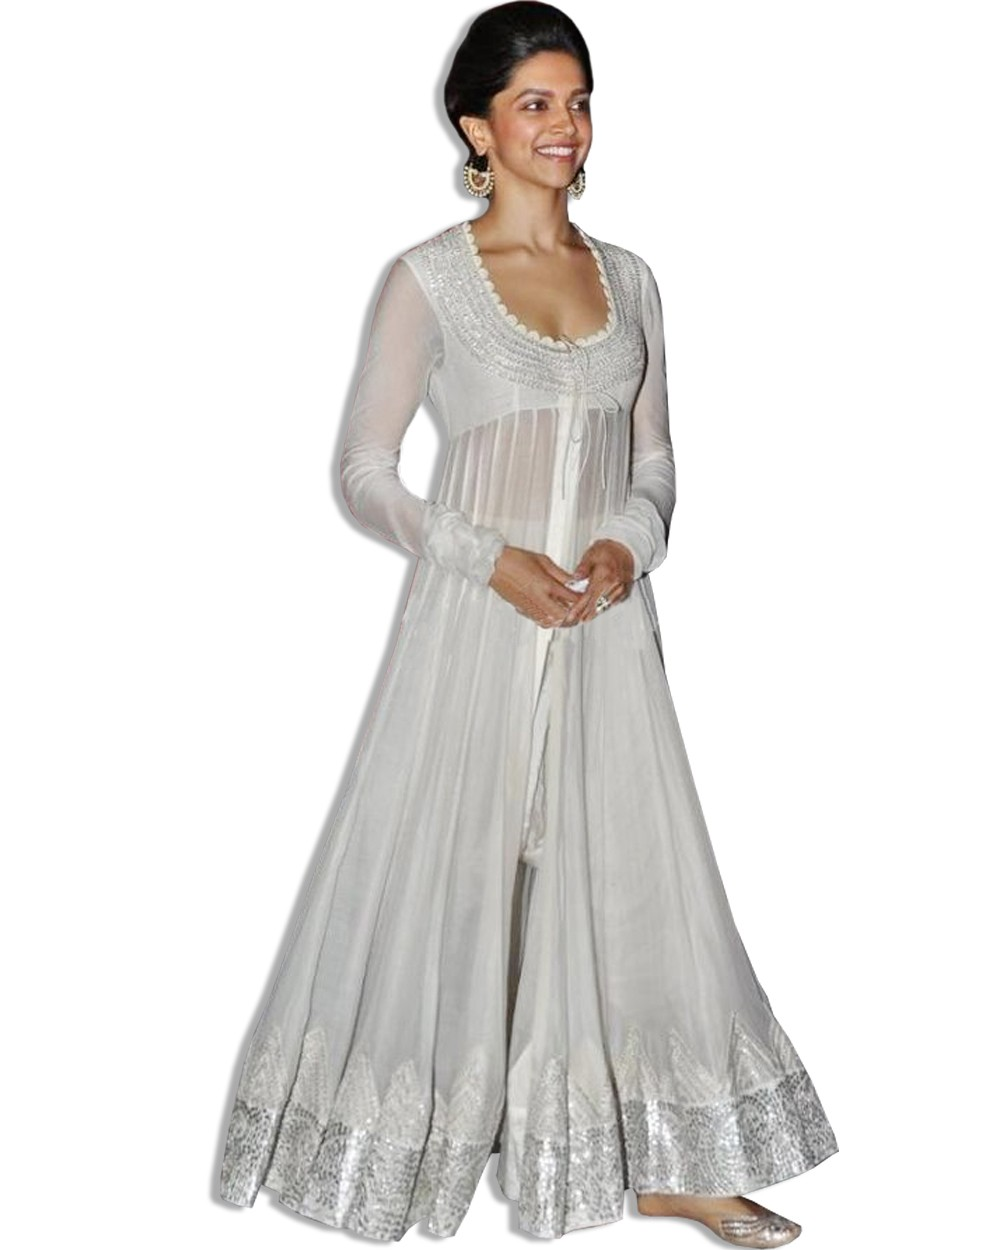 deepika padukone white floor length dress manufacturer